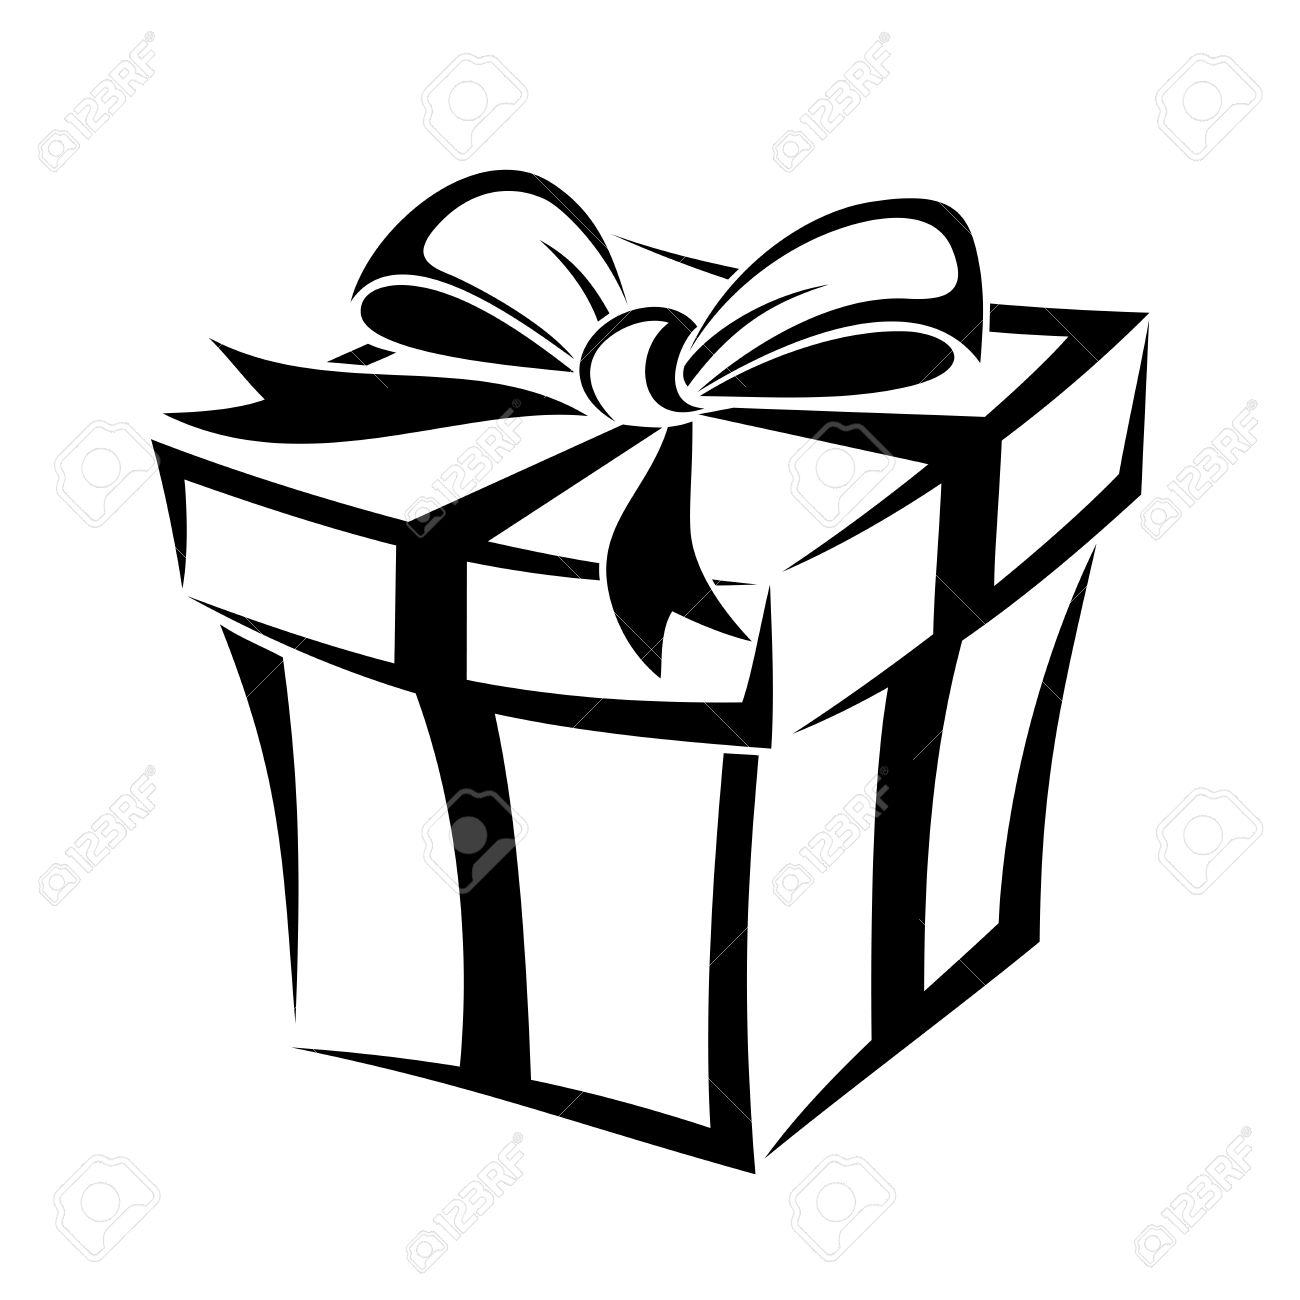 Gift box black and white clipart clipart free stock Gift box clipart black and white 6 » Clipart Station clipart free stock